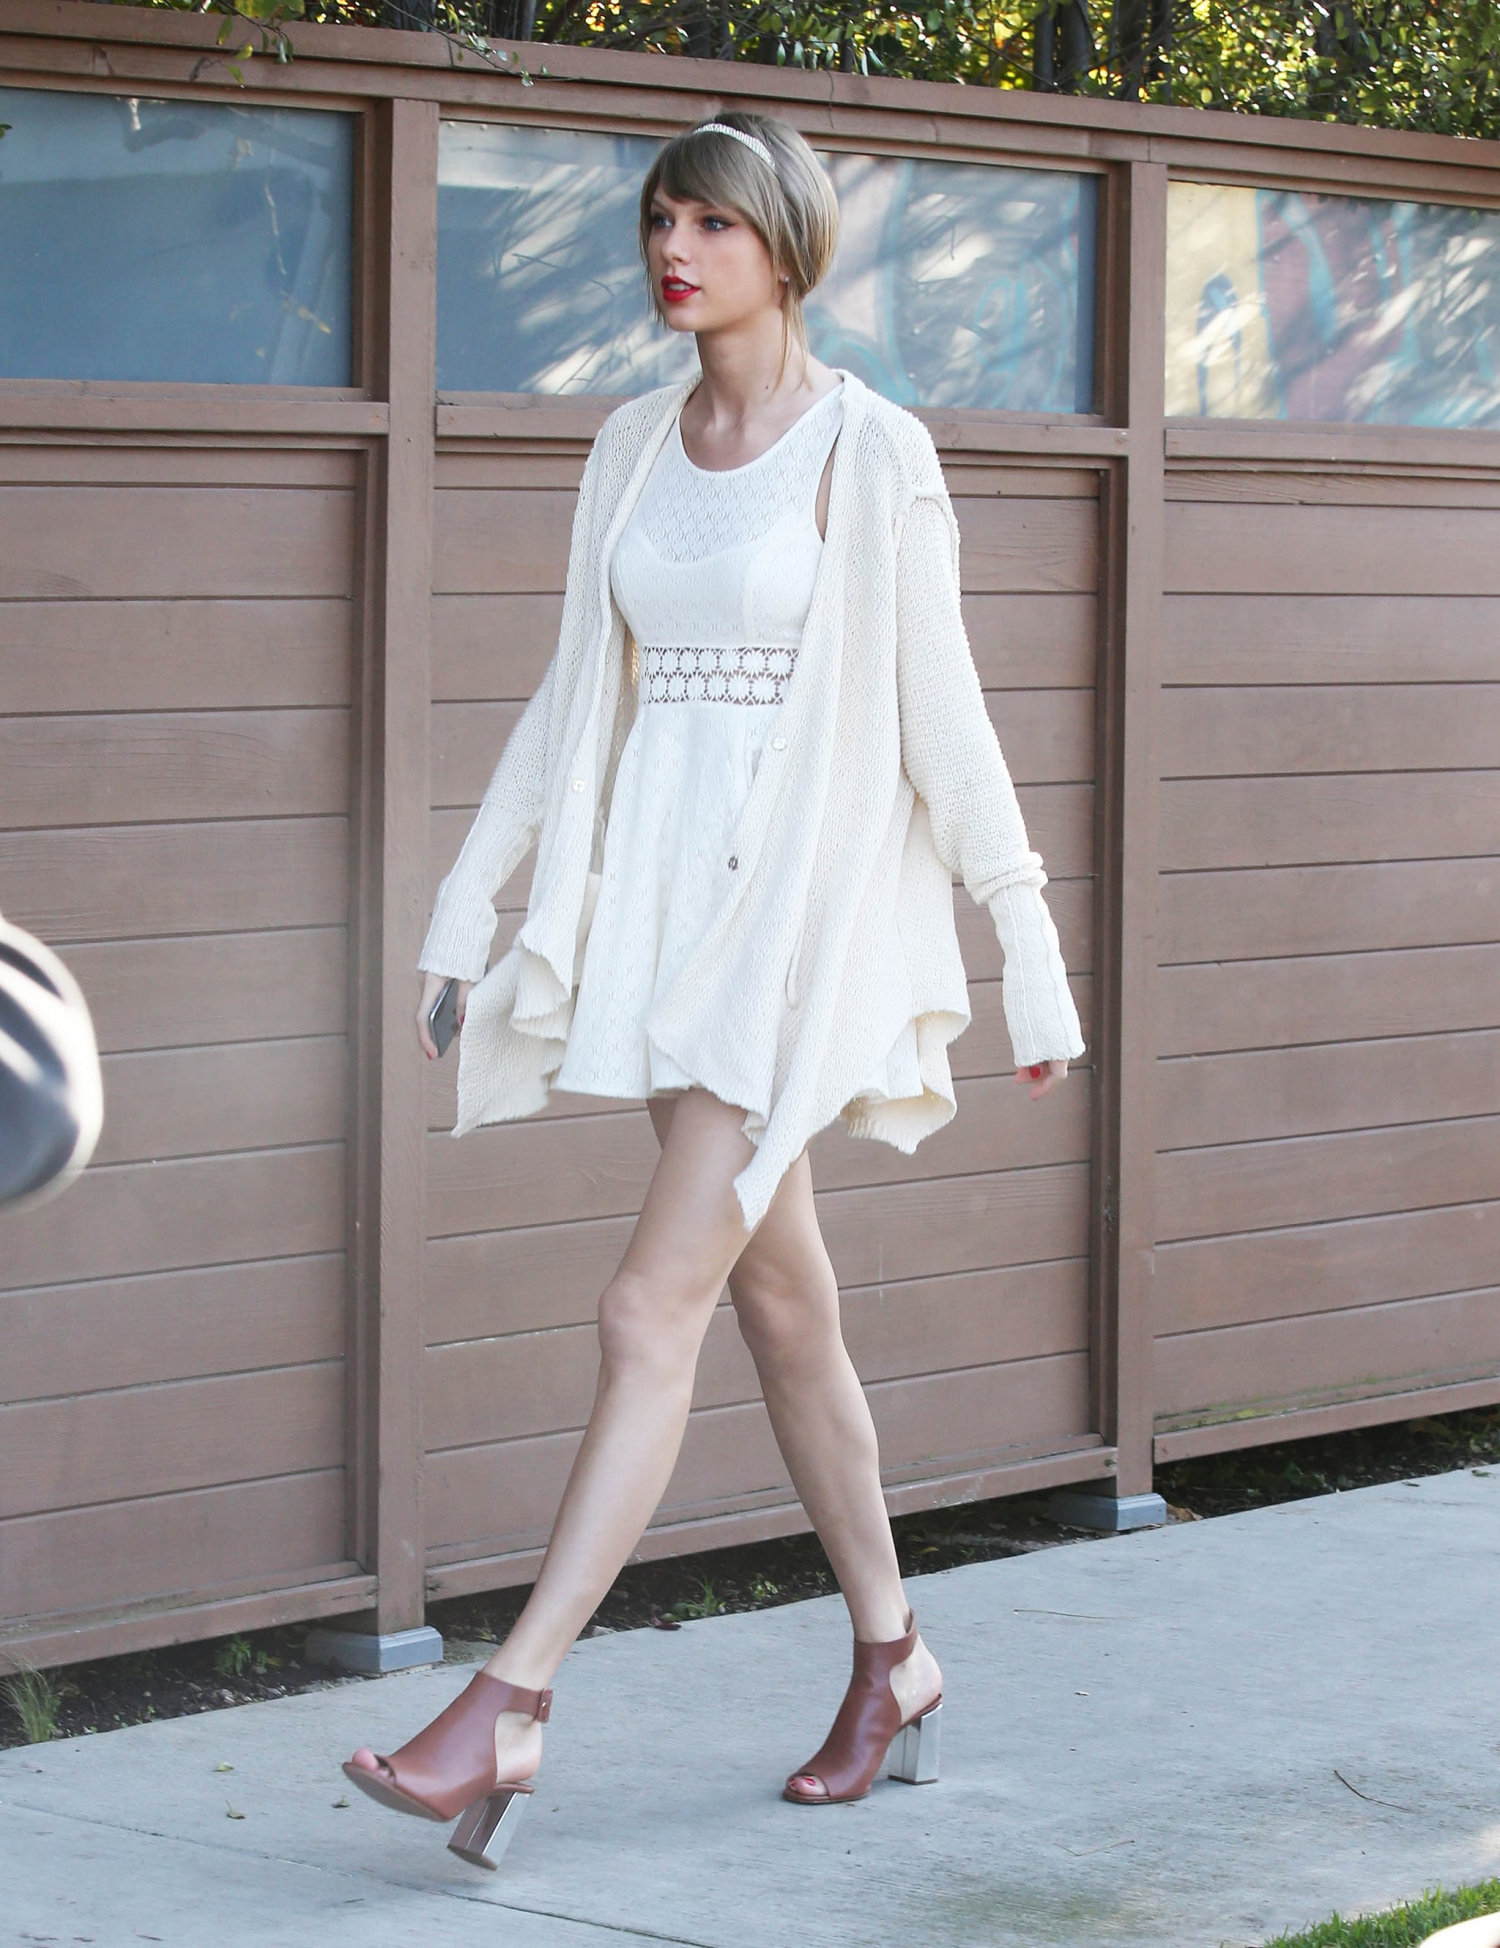 Taylor-Swift-wore-white-dress-her-Wednesday-out-LA.jpg